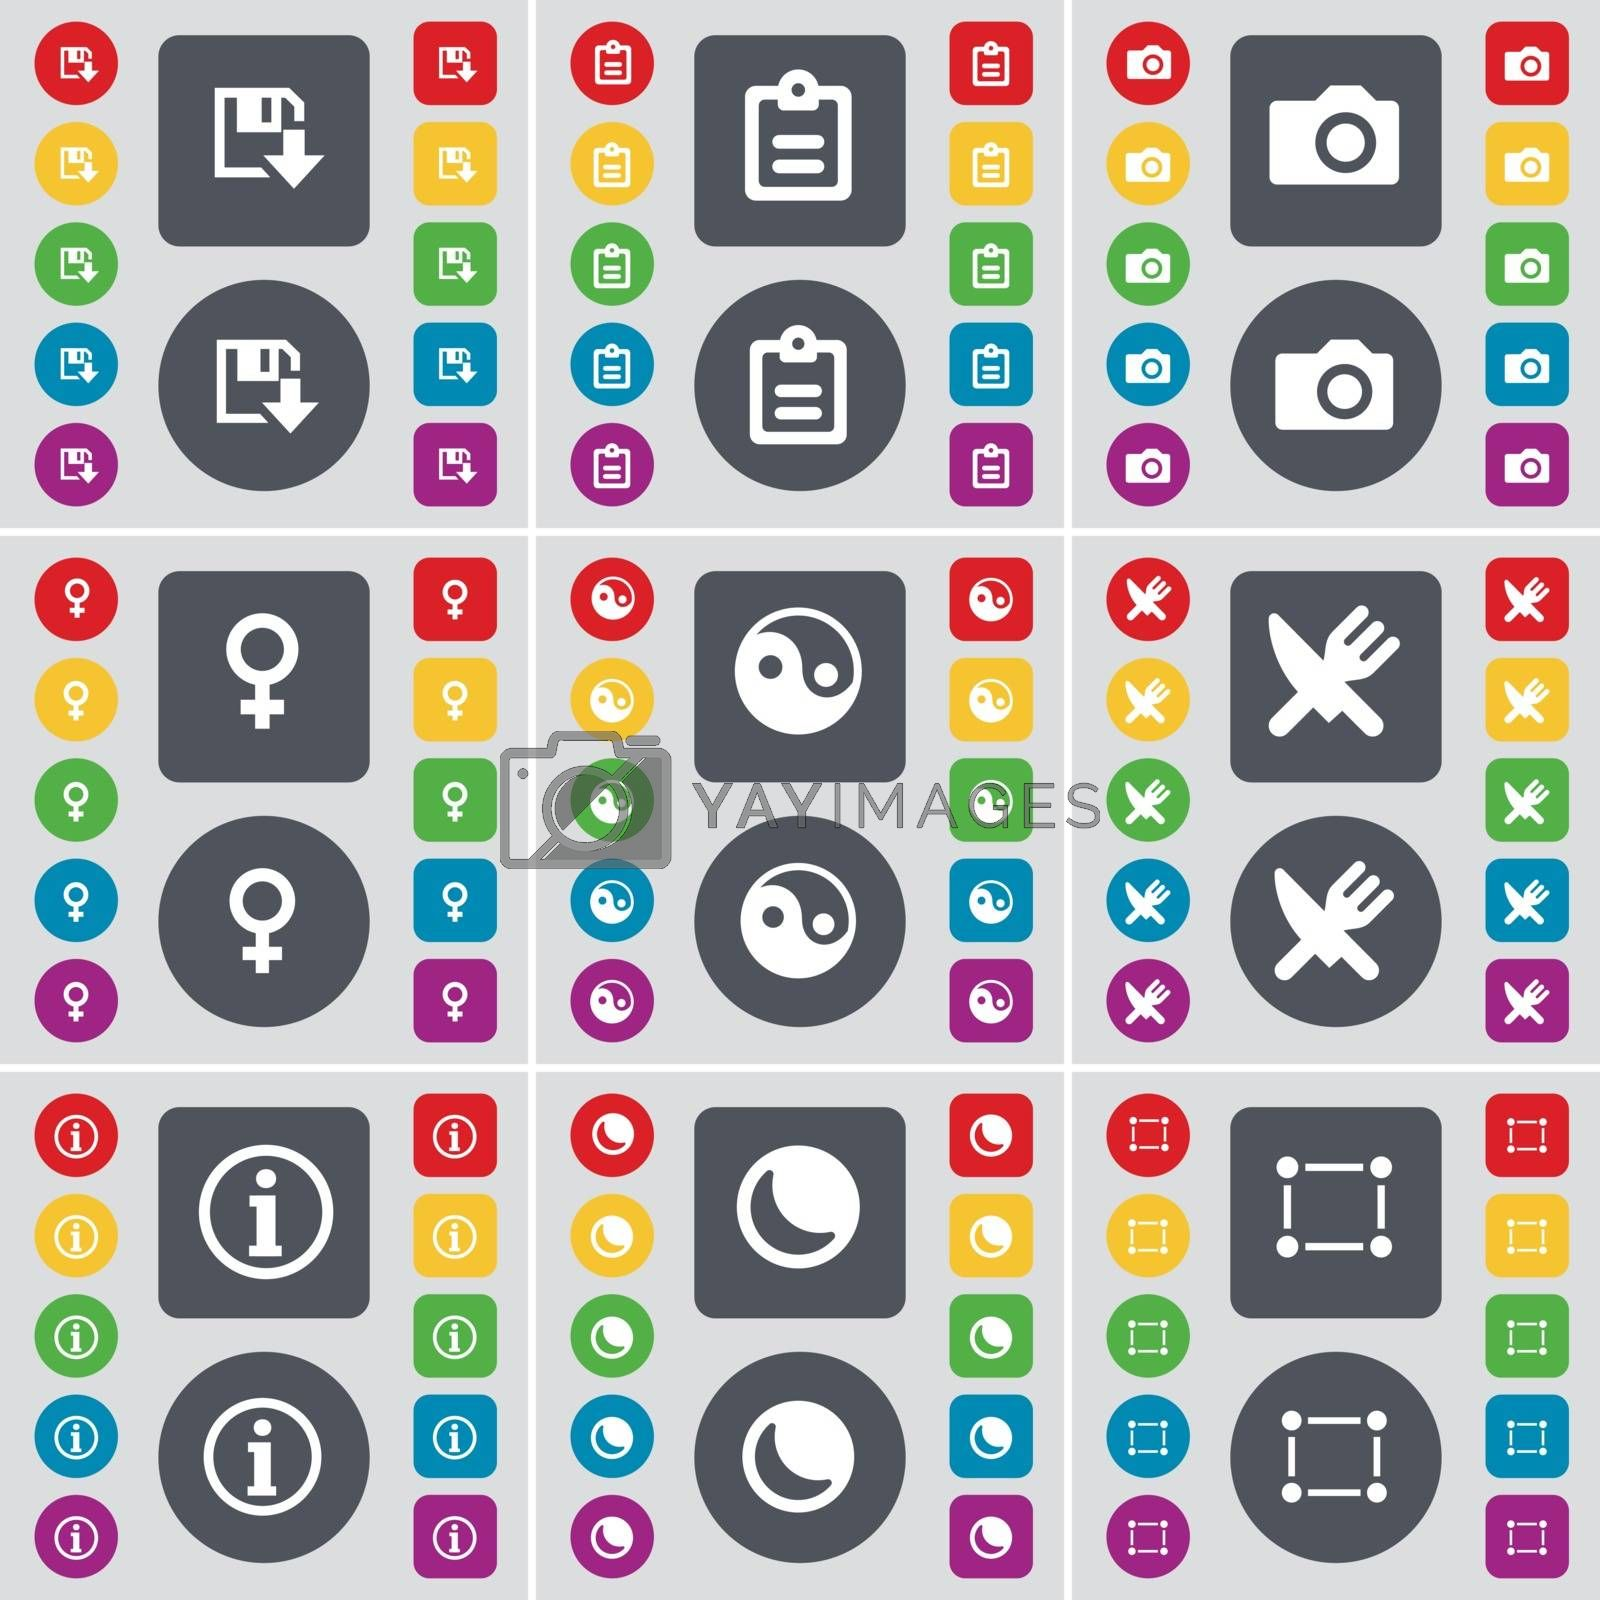 Royalty free image of Floppy, Survey, Camera, Venus symbol, Yin-Yang, Fork and knife, Information, Moon, Frame icon symbol. A large set of flat, colored buttons for your design. Vector by serhii_lohvyniuk